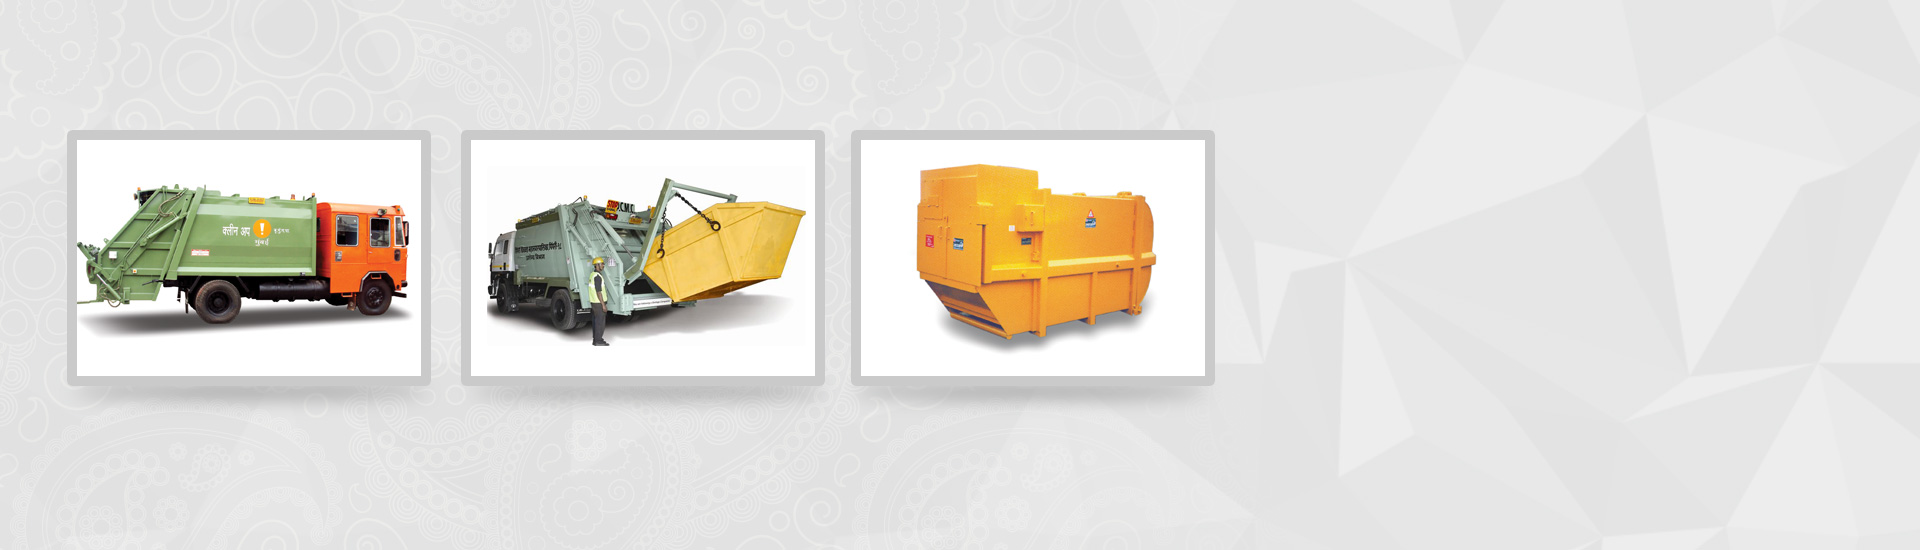 Solid Waste Collection & <br>Transportation Equipment